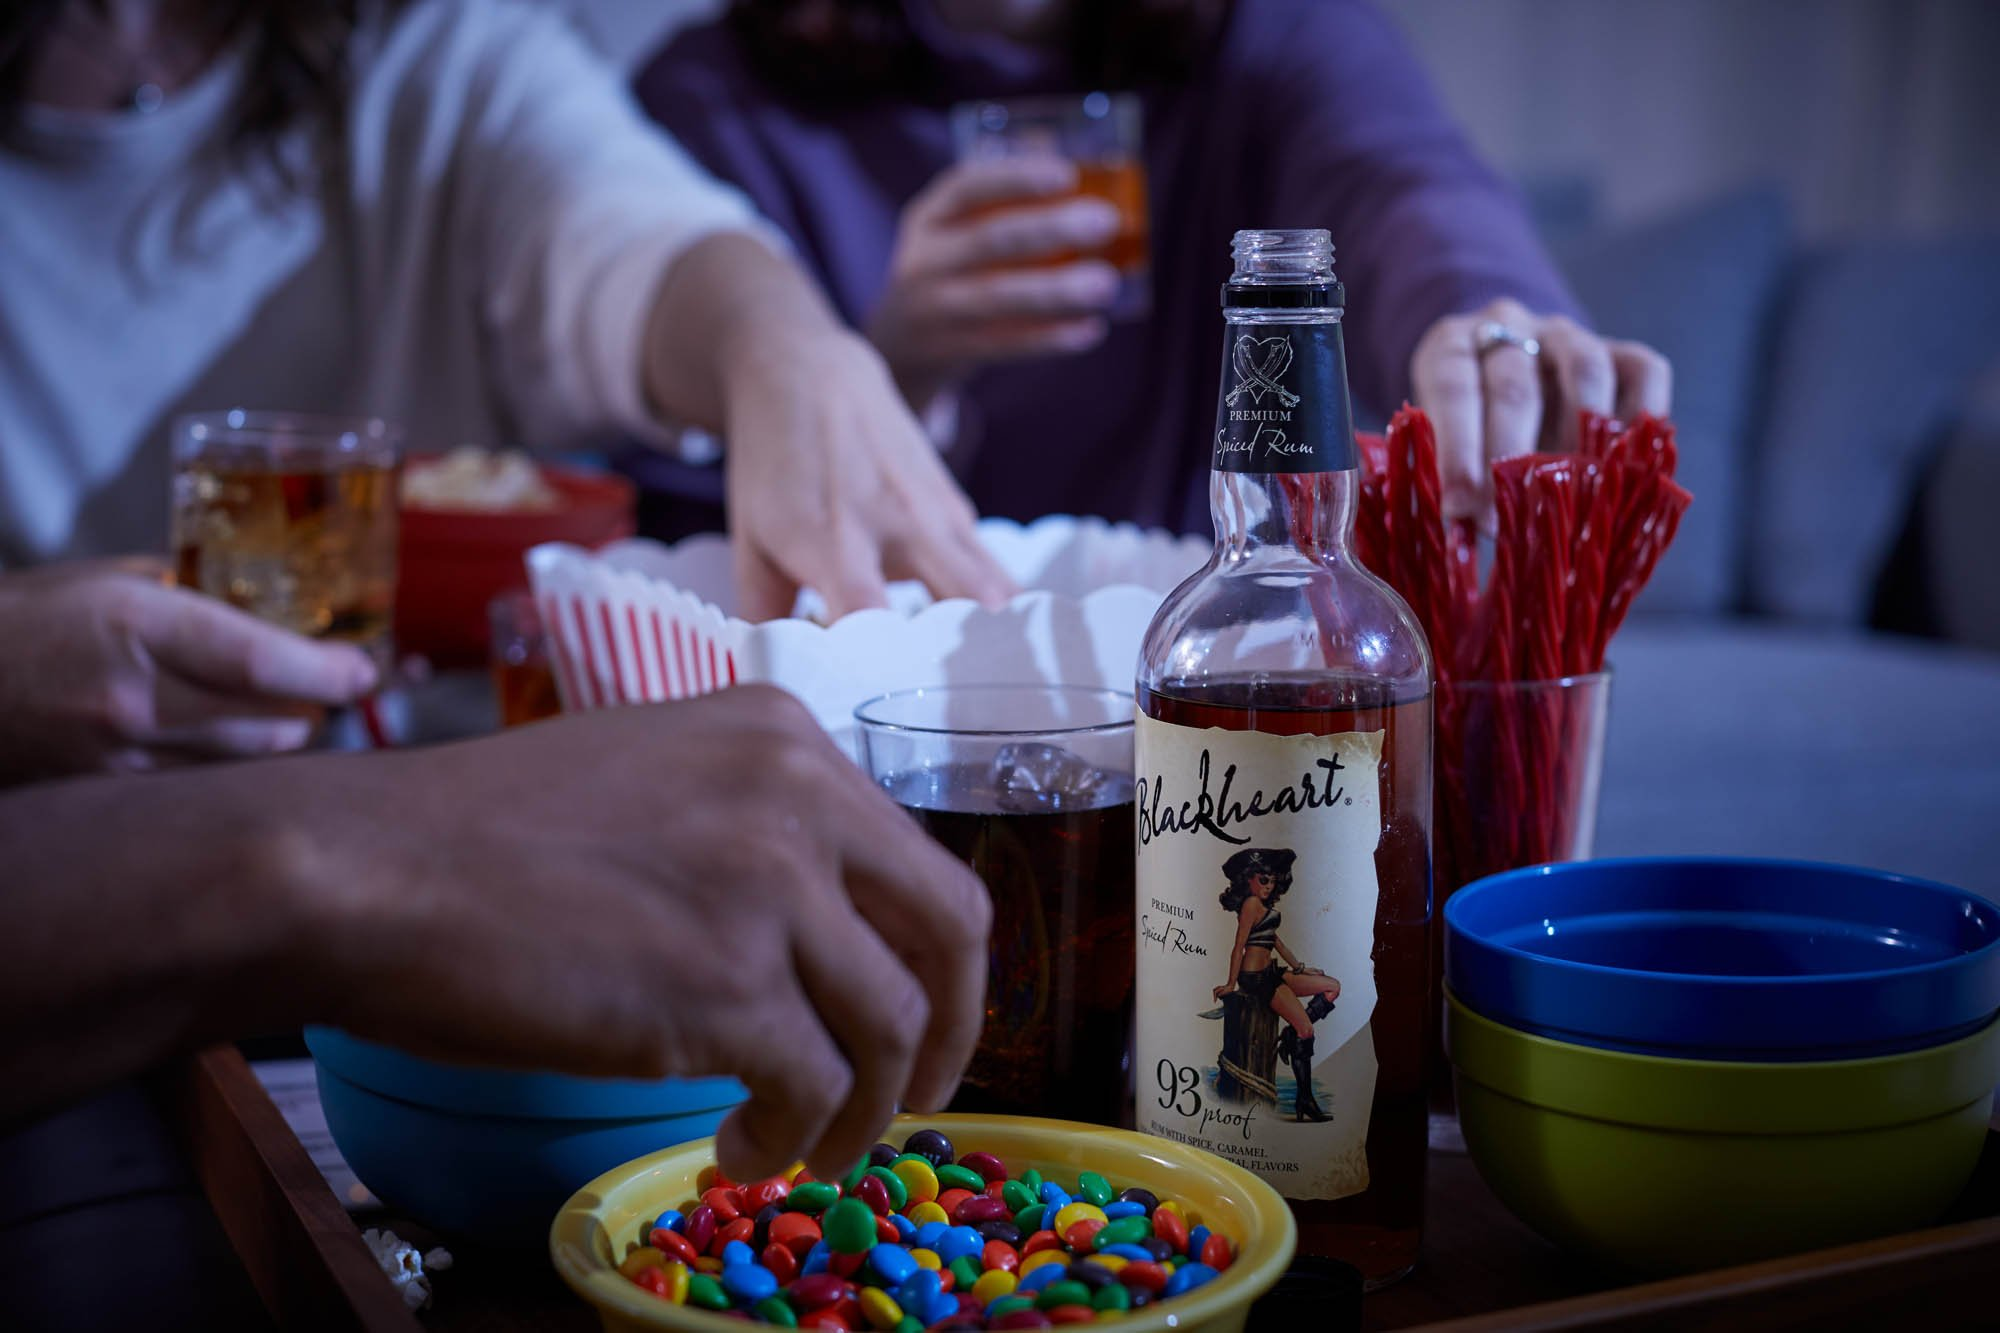 Blackheart rum on a snack table during movie night - lifestyle drink photography